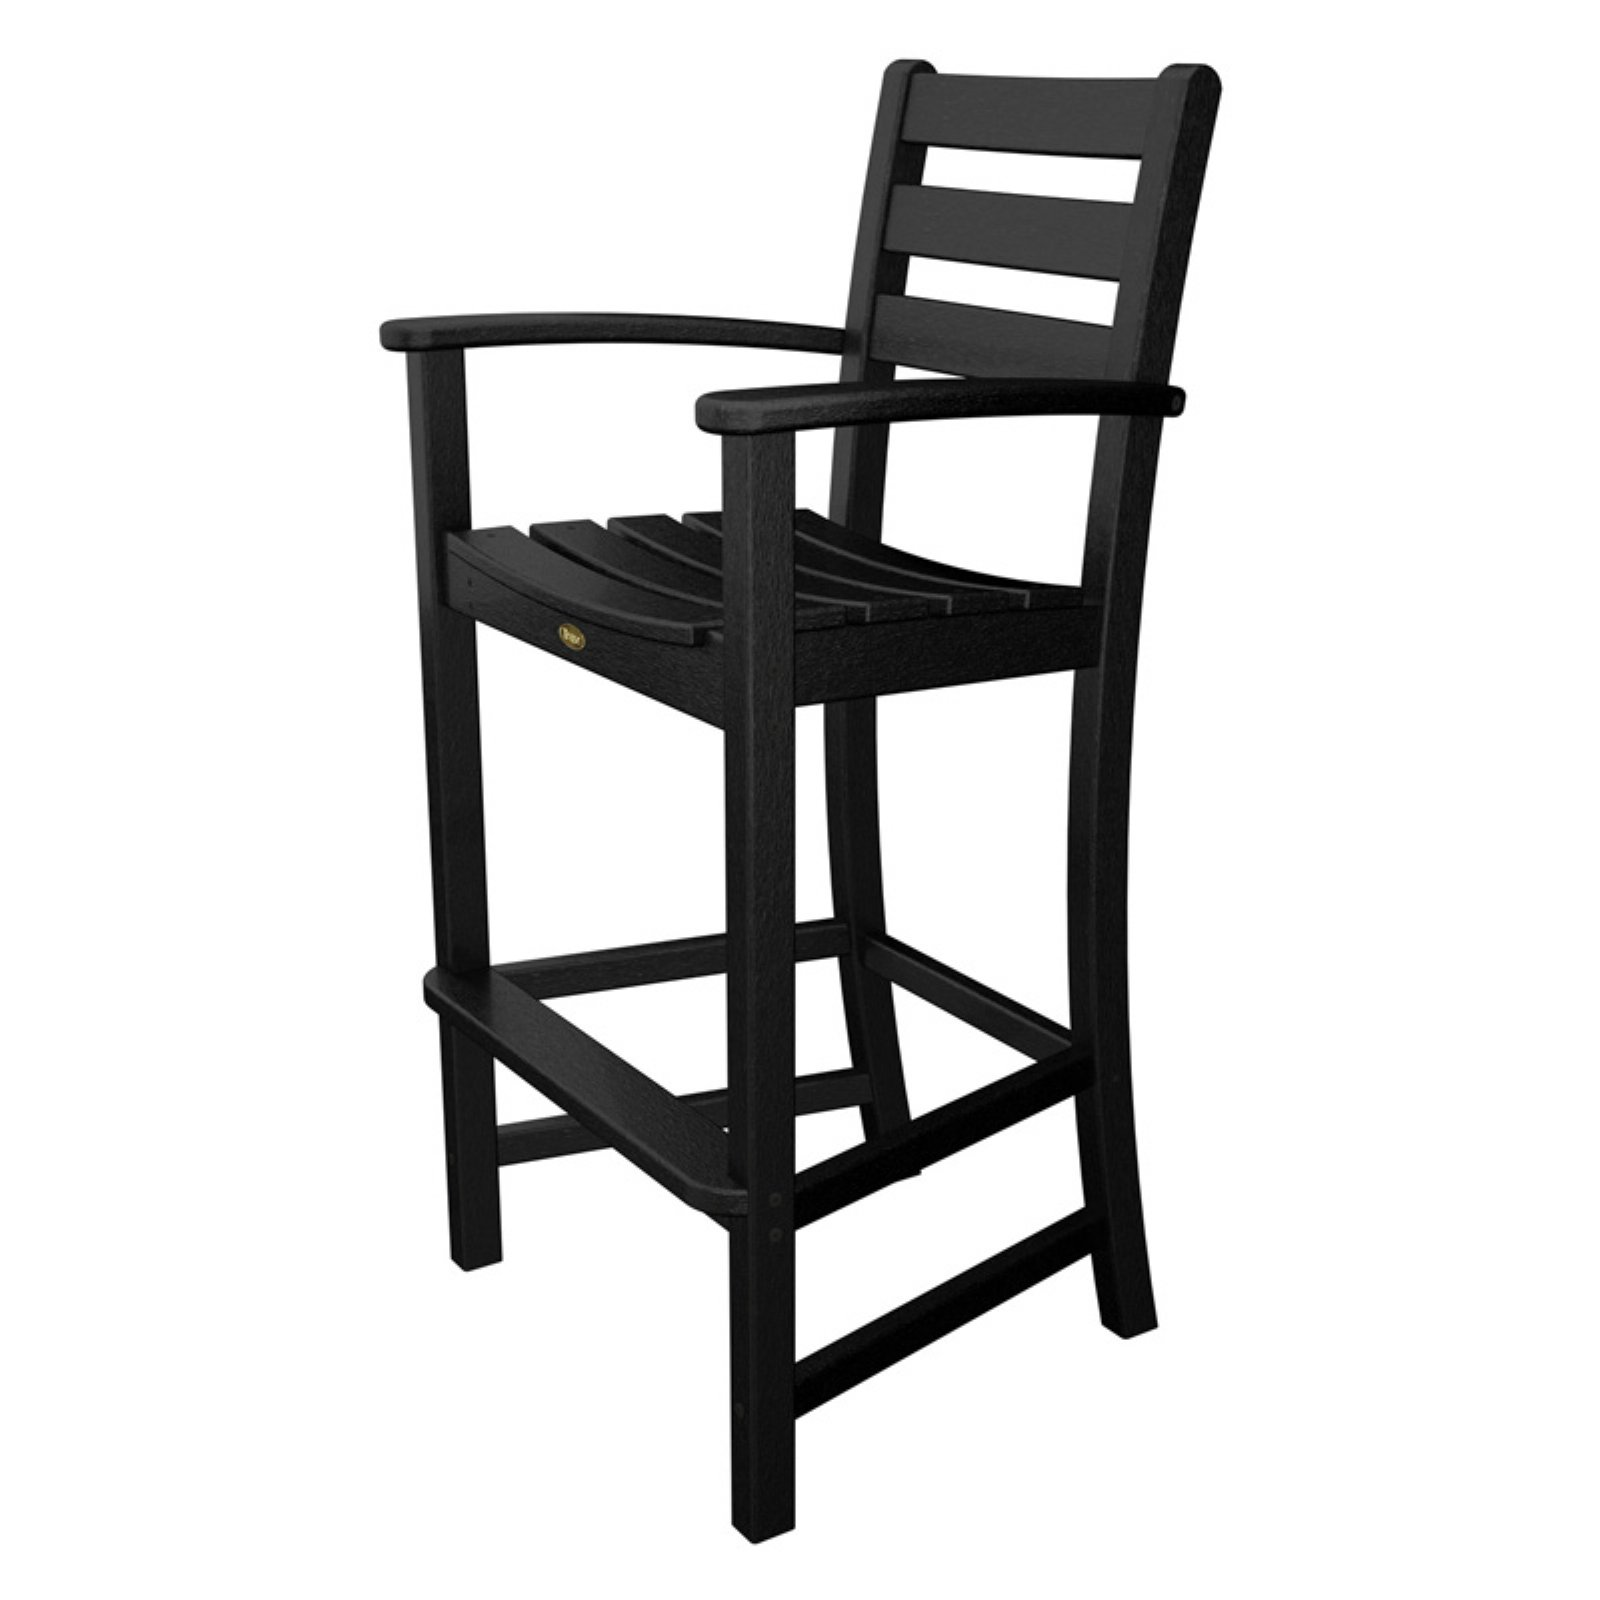 Trex Outdoor Furniture Recycled Plastic Monterey Bay Bar Height Arm Chair